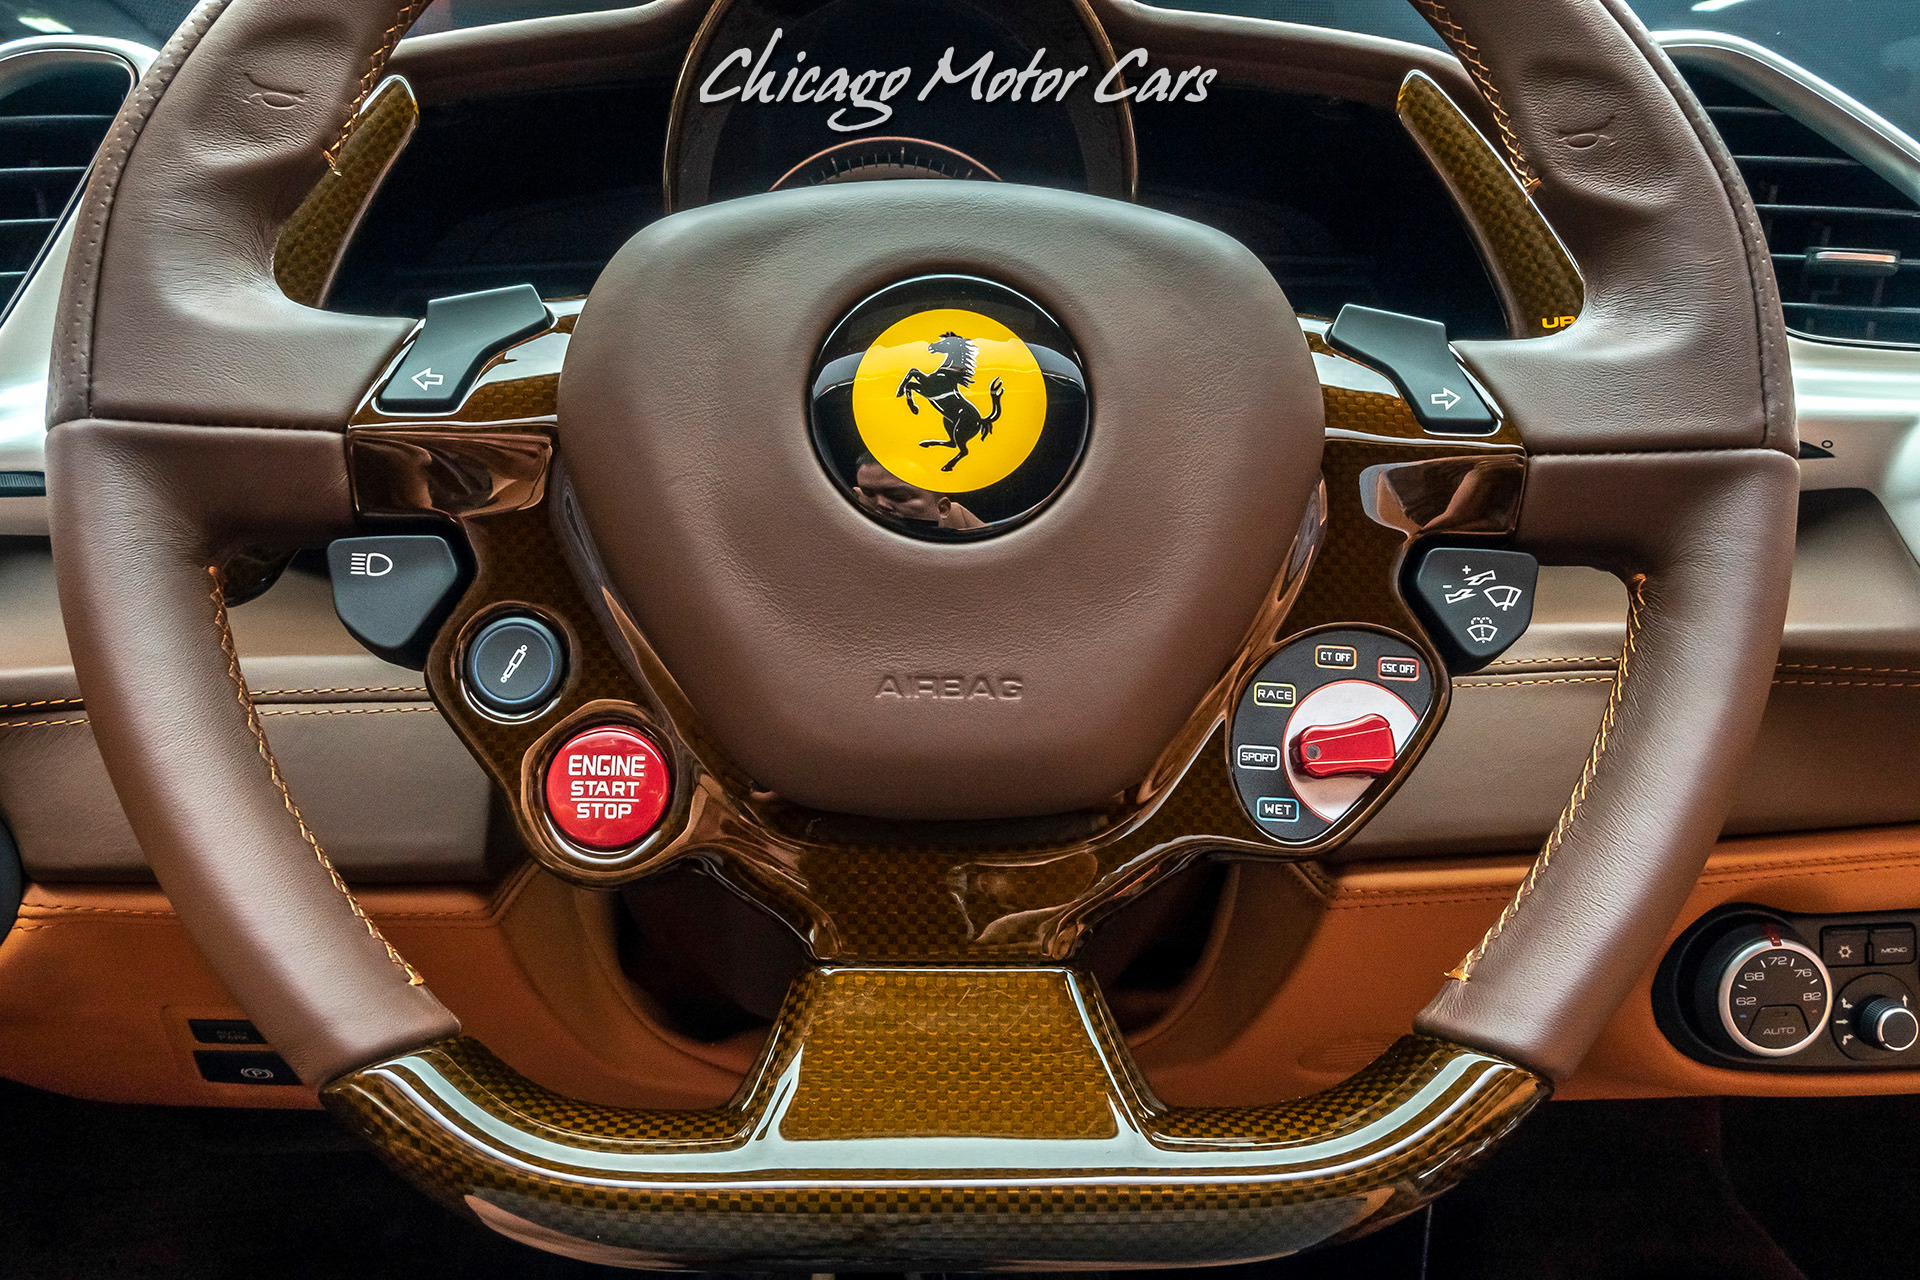 Used 2017 Ferrari 488 Spider Convertible Only 3800 Miles Msrp 409k New For Sale Special Pricing Chicago Motor Cars Stock 16350